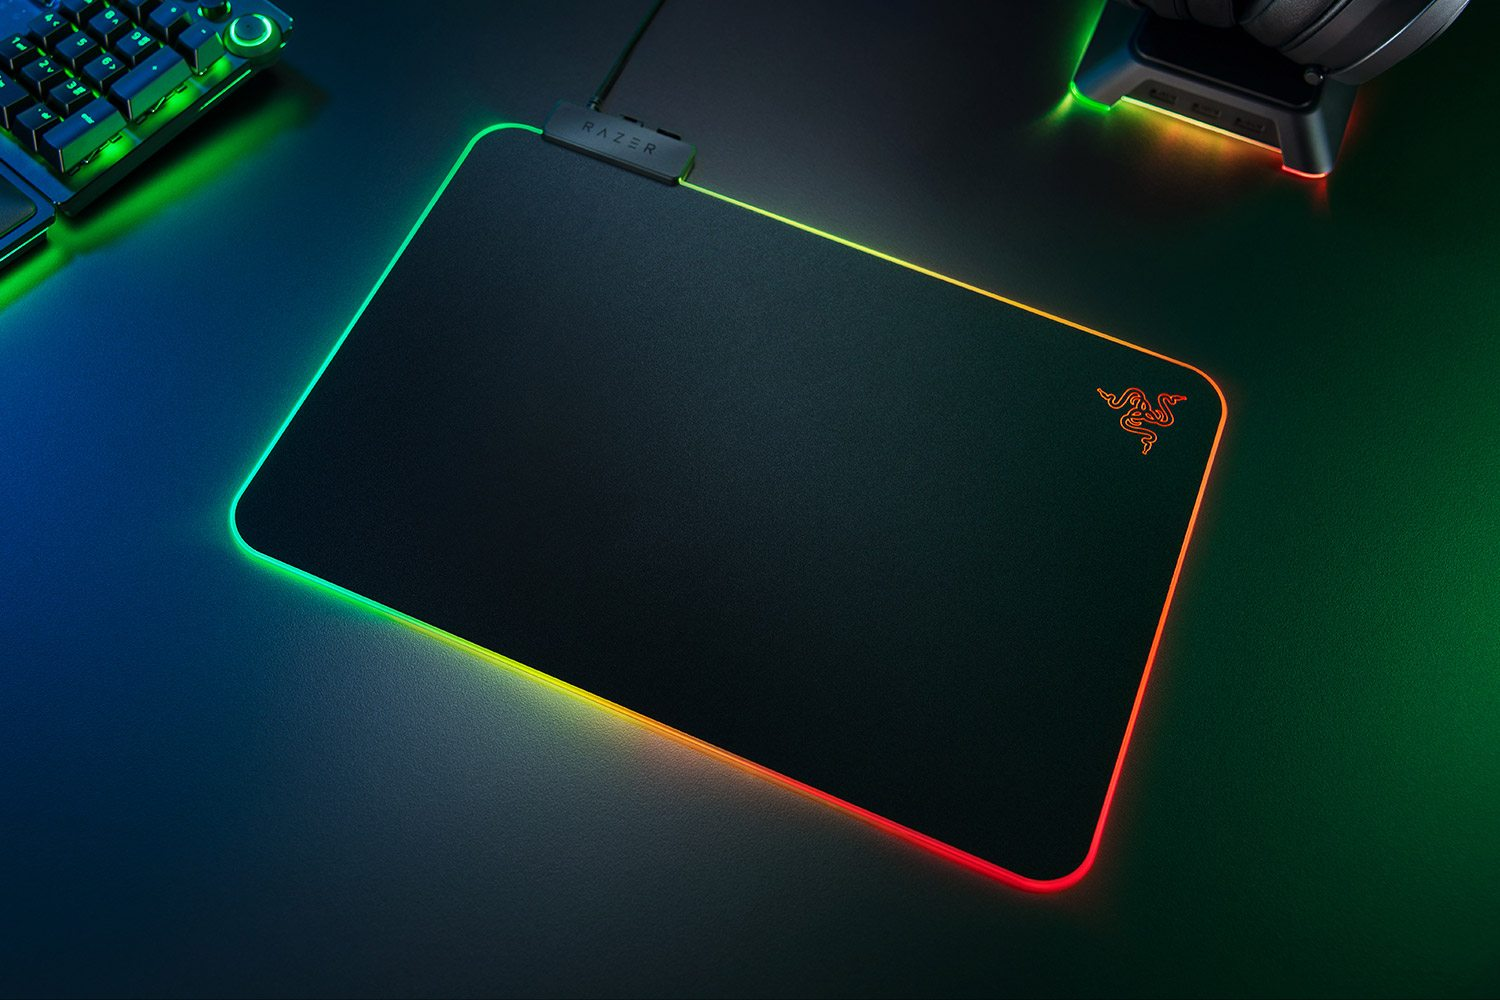 razer gaming mouse pad